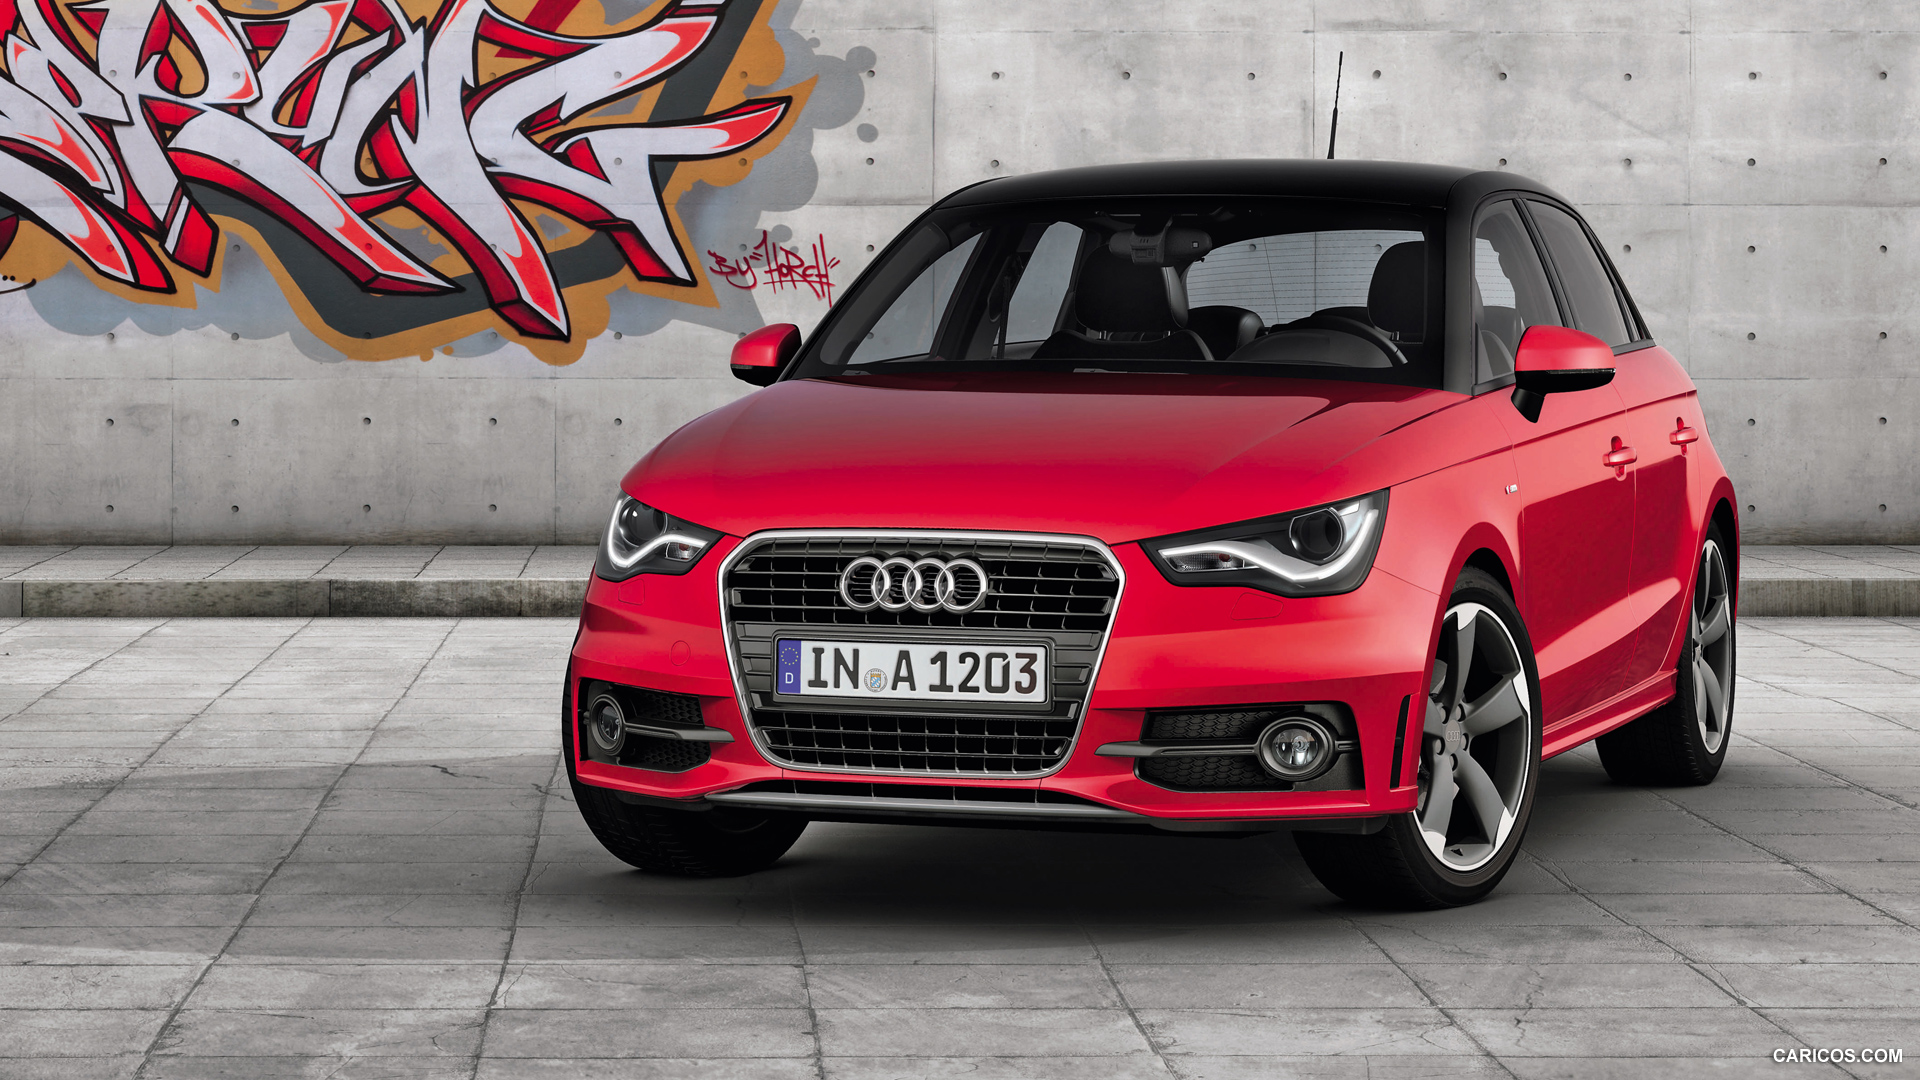 1920x1080 - Audi A1 Wallpapers 27